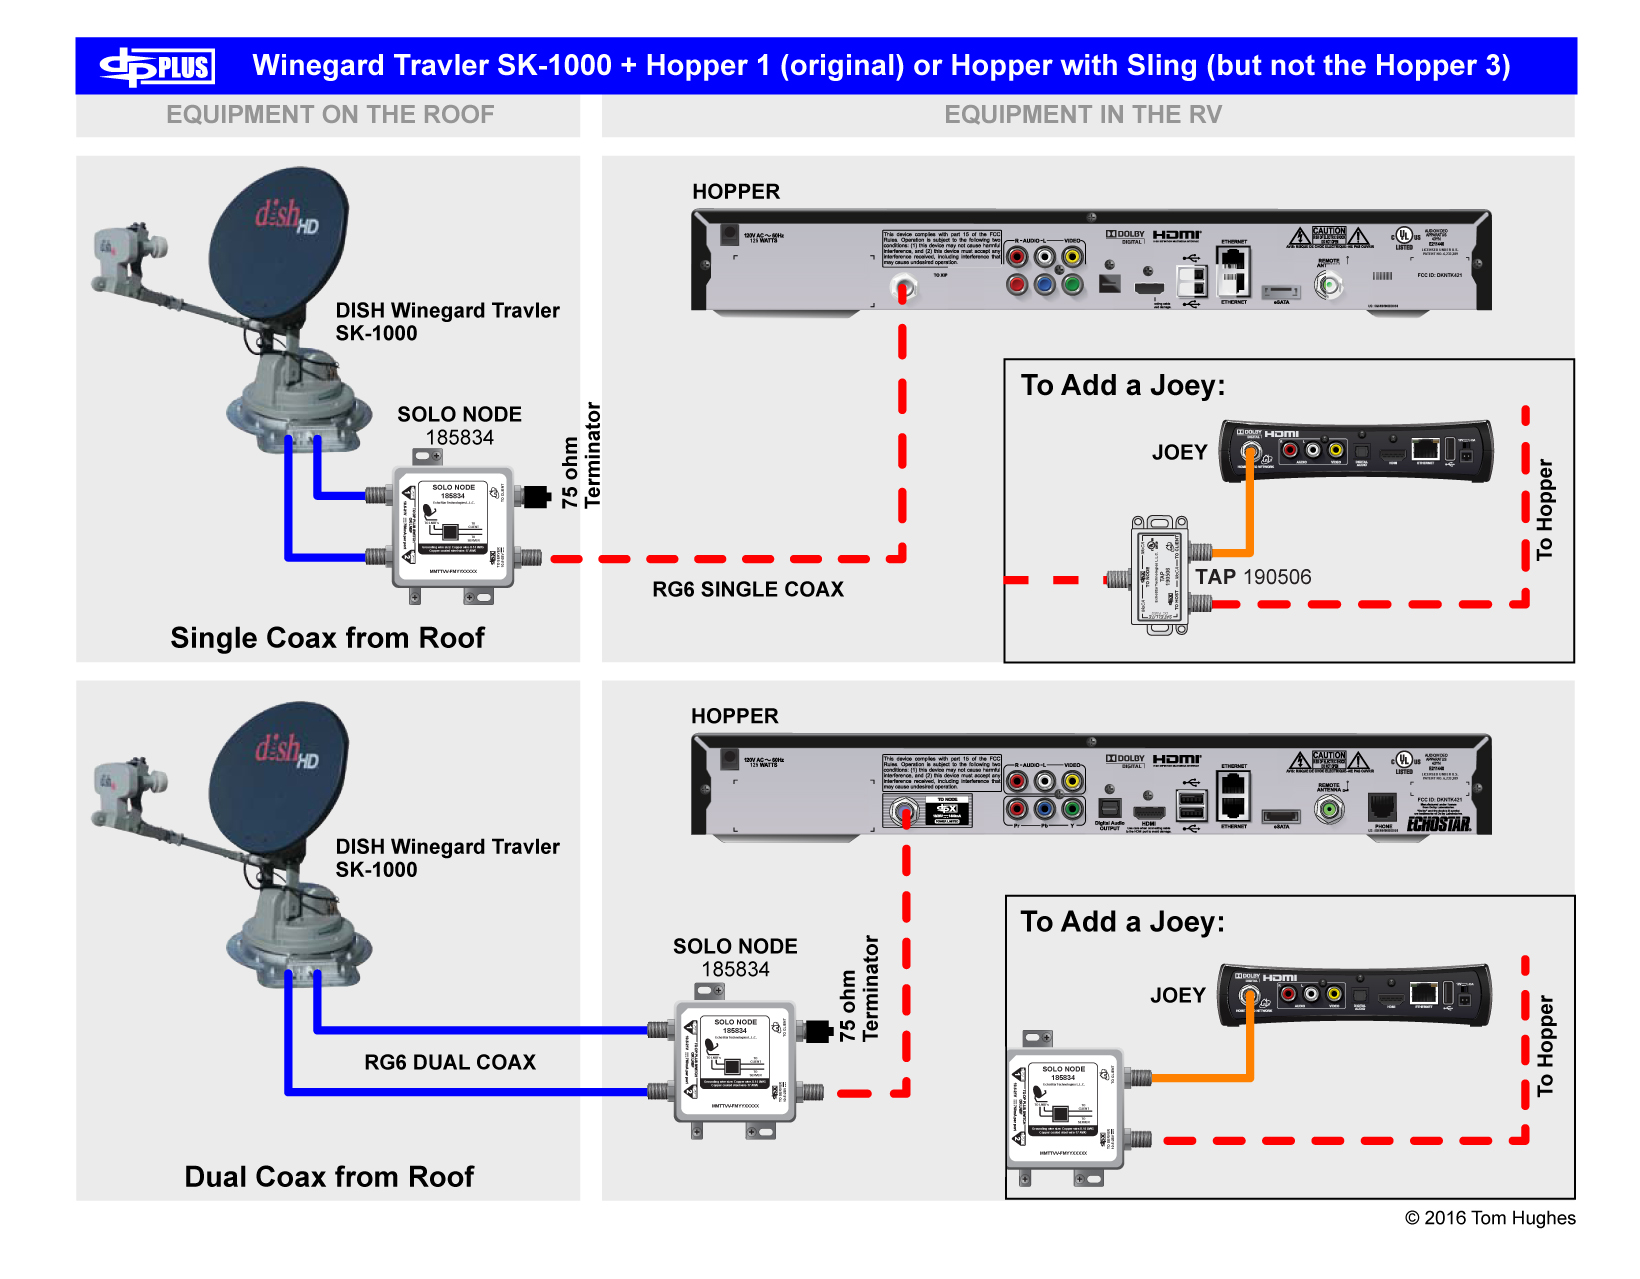 Whole Home Dvr Hr Install in addition Directv Swm Lnb Dish Wiring Diagram Cable Diagrams Inside   Direct For A as well Swm Dvr Deca likewise Rvu Alliance Rvu Open  work Diagram additionally Directv Hd Dvr Wiring Diagram. on directv genie wiring diagram